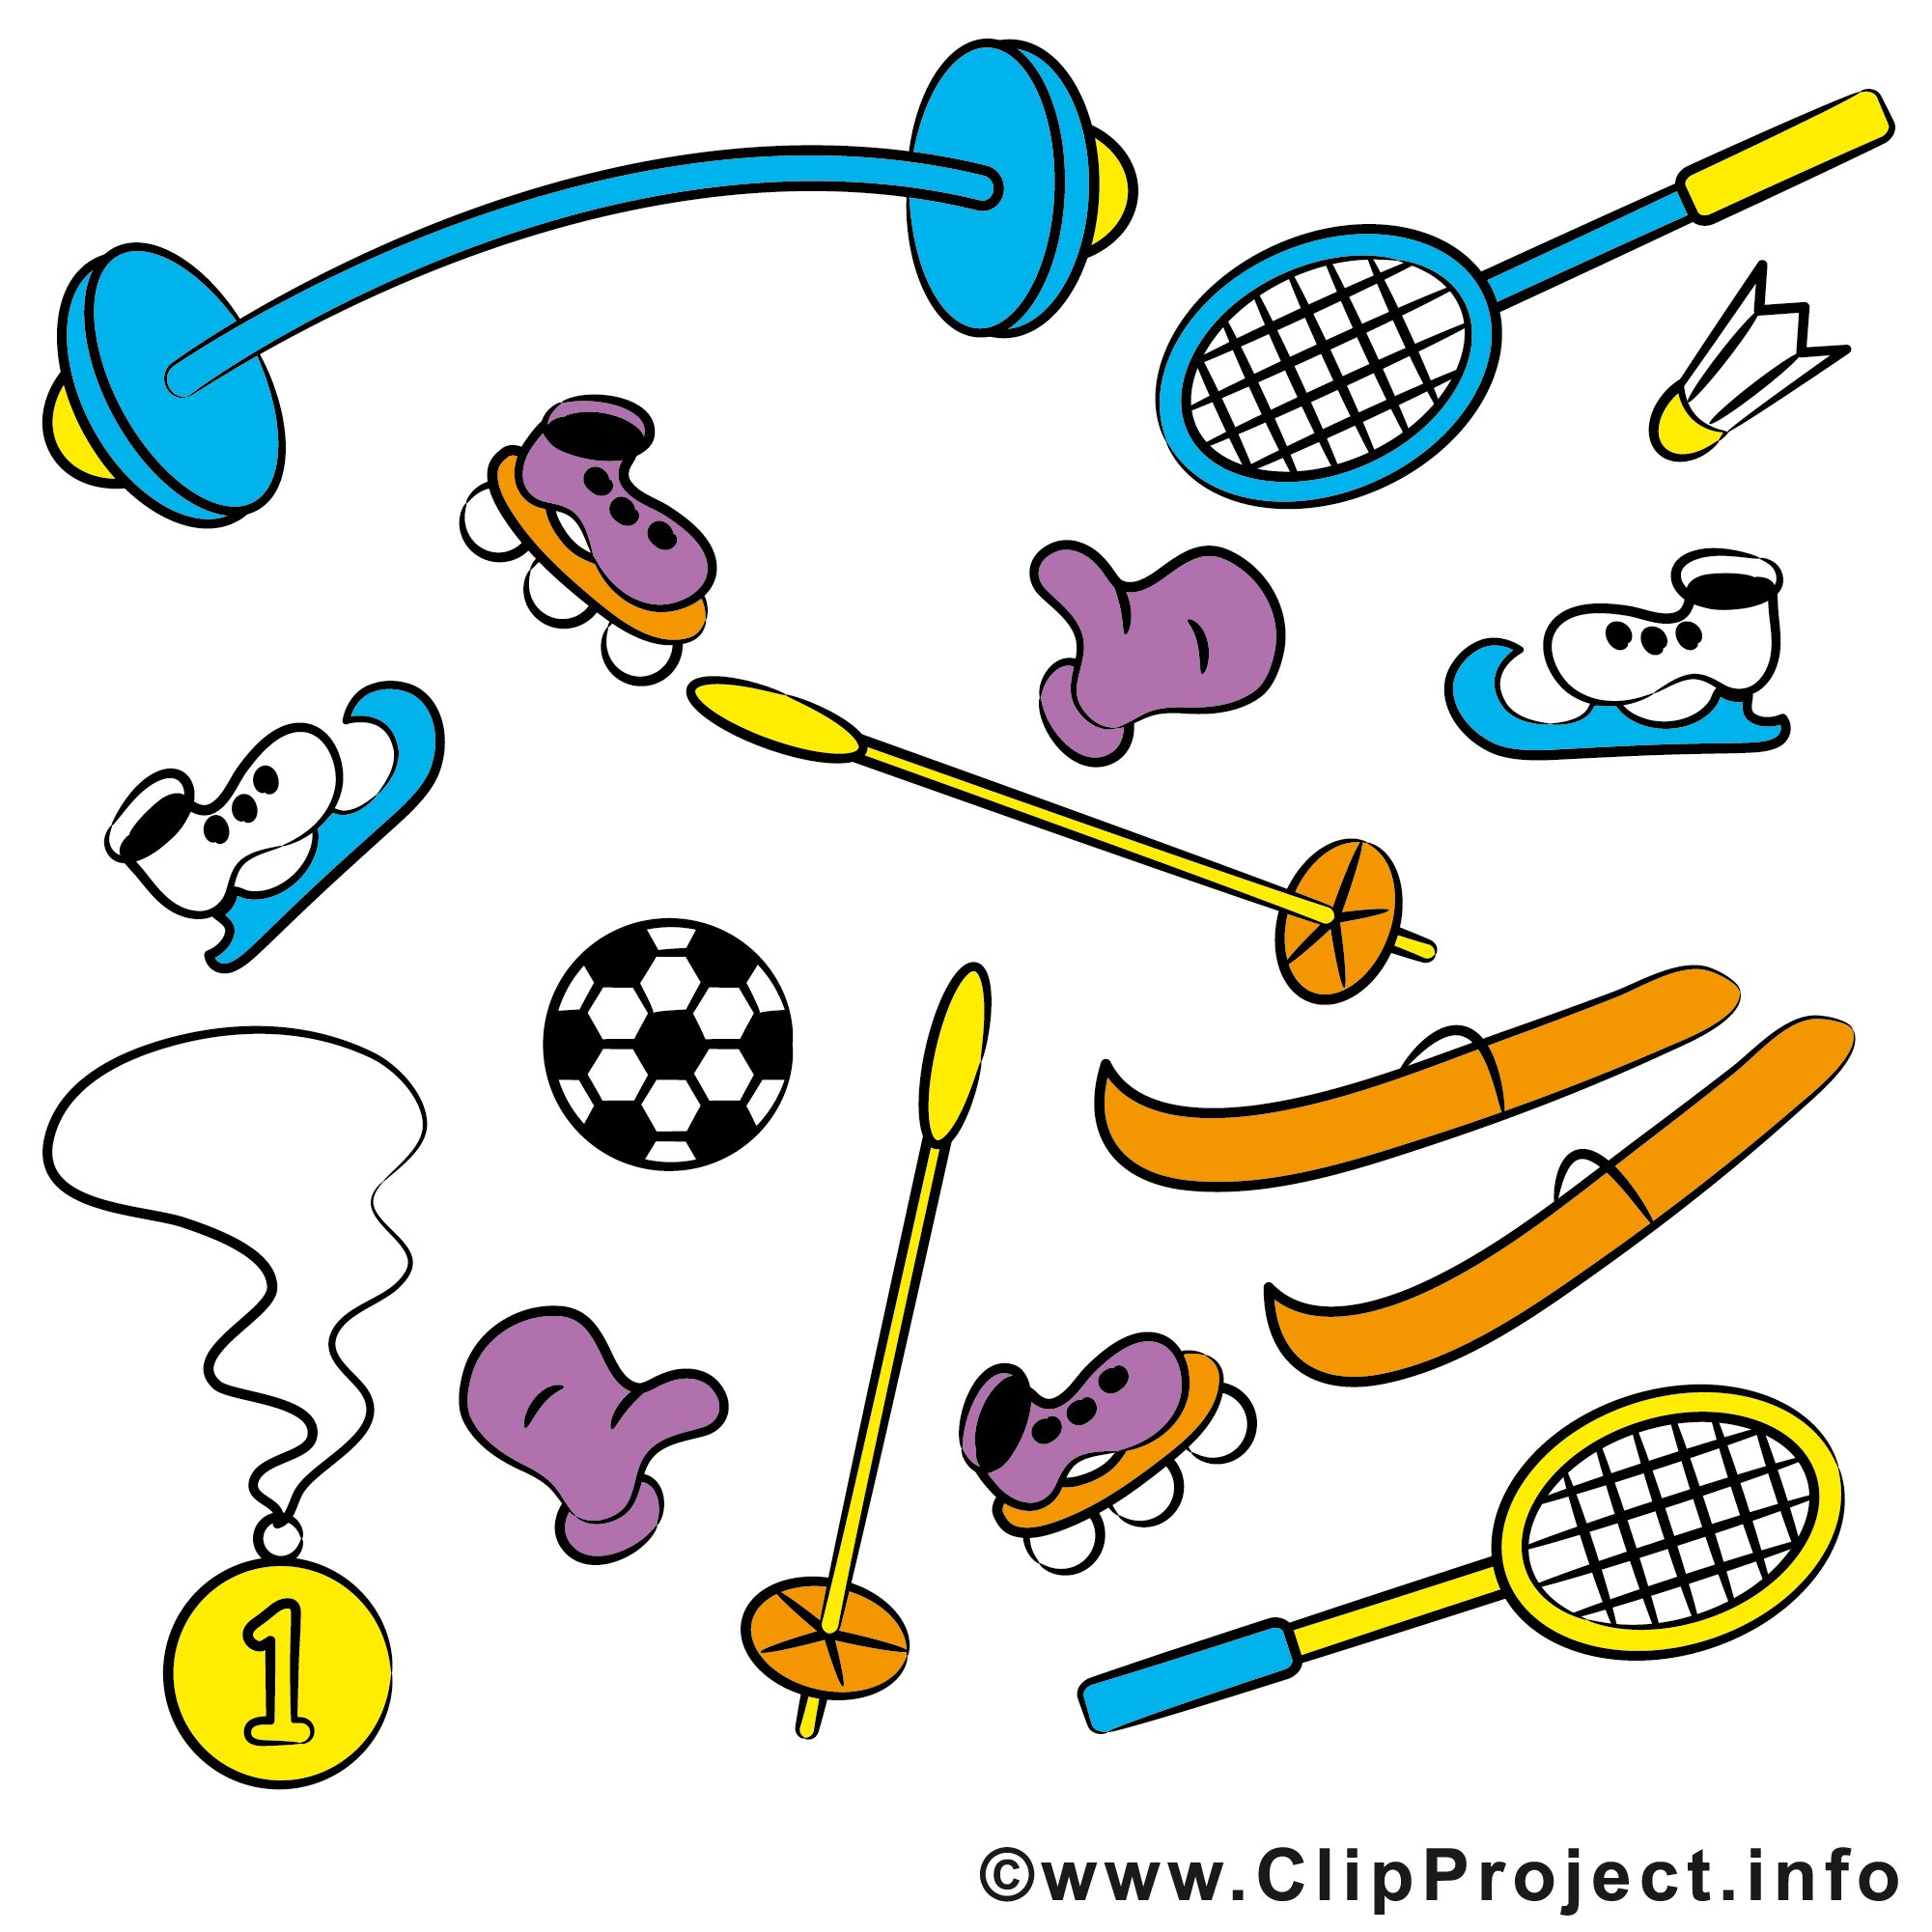 Free sport clip art to download for free.